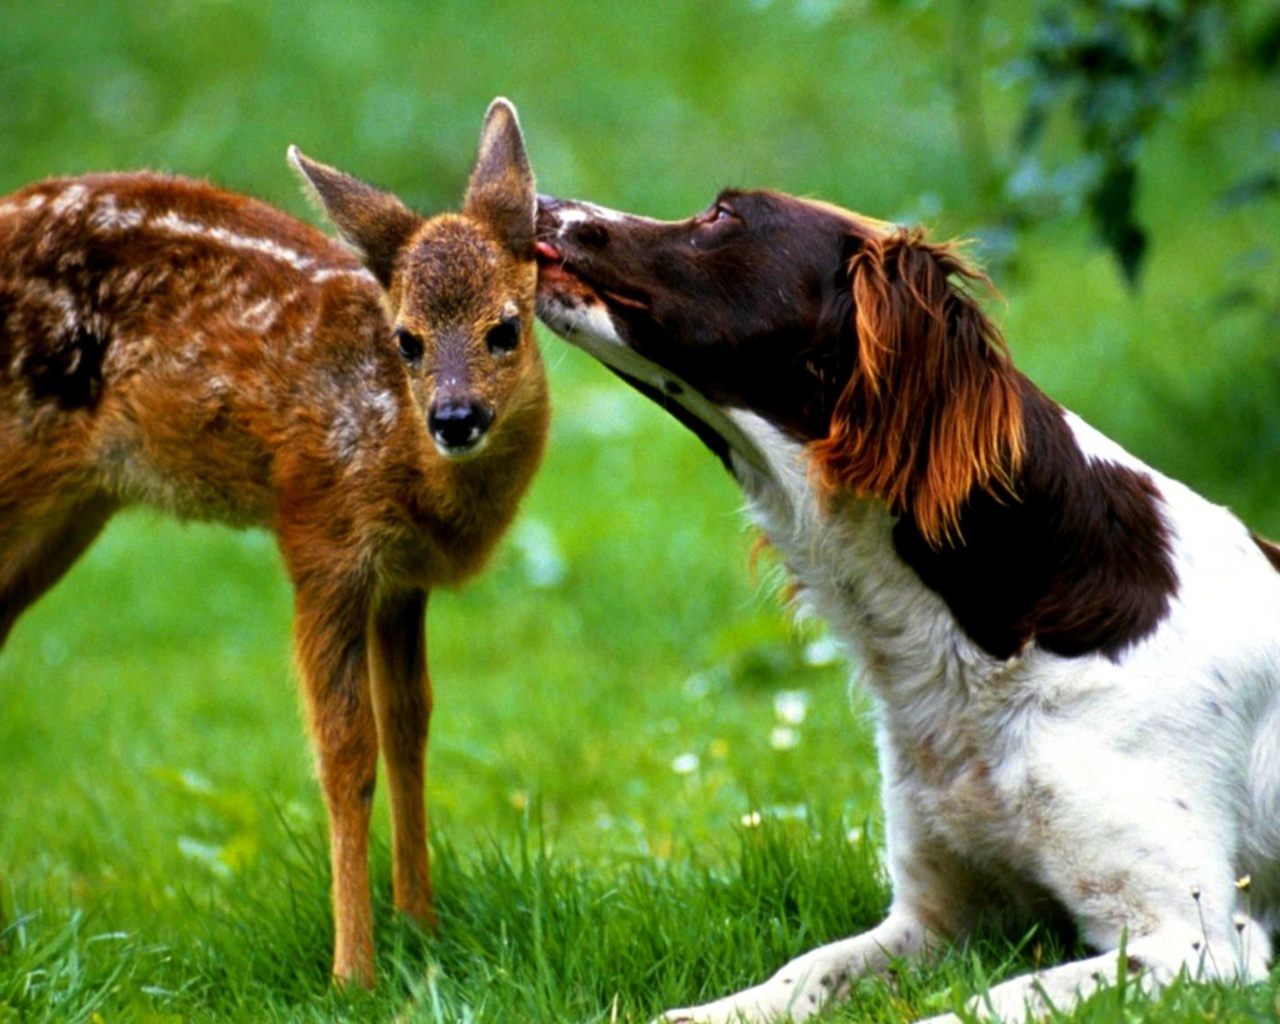 Kisses Wallpapers With Quotes Free Always 4 You 20 Amazing Animal Kisses